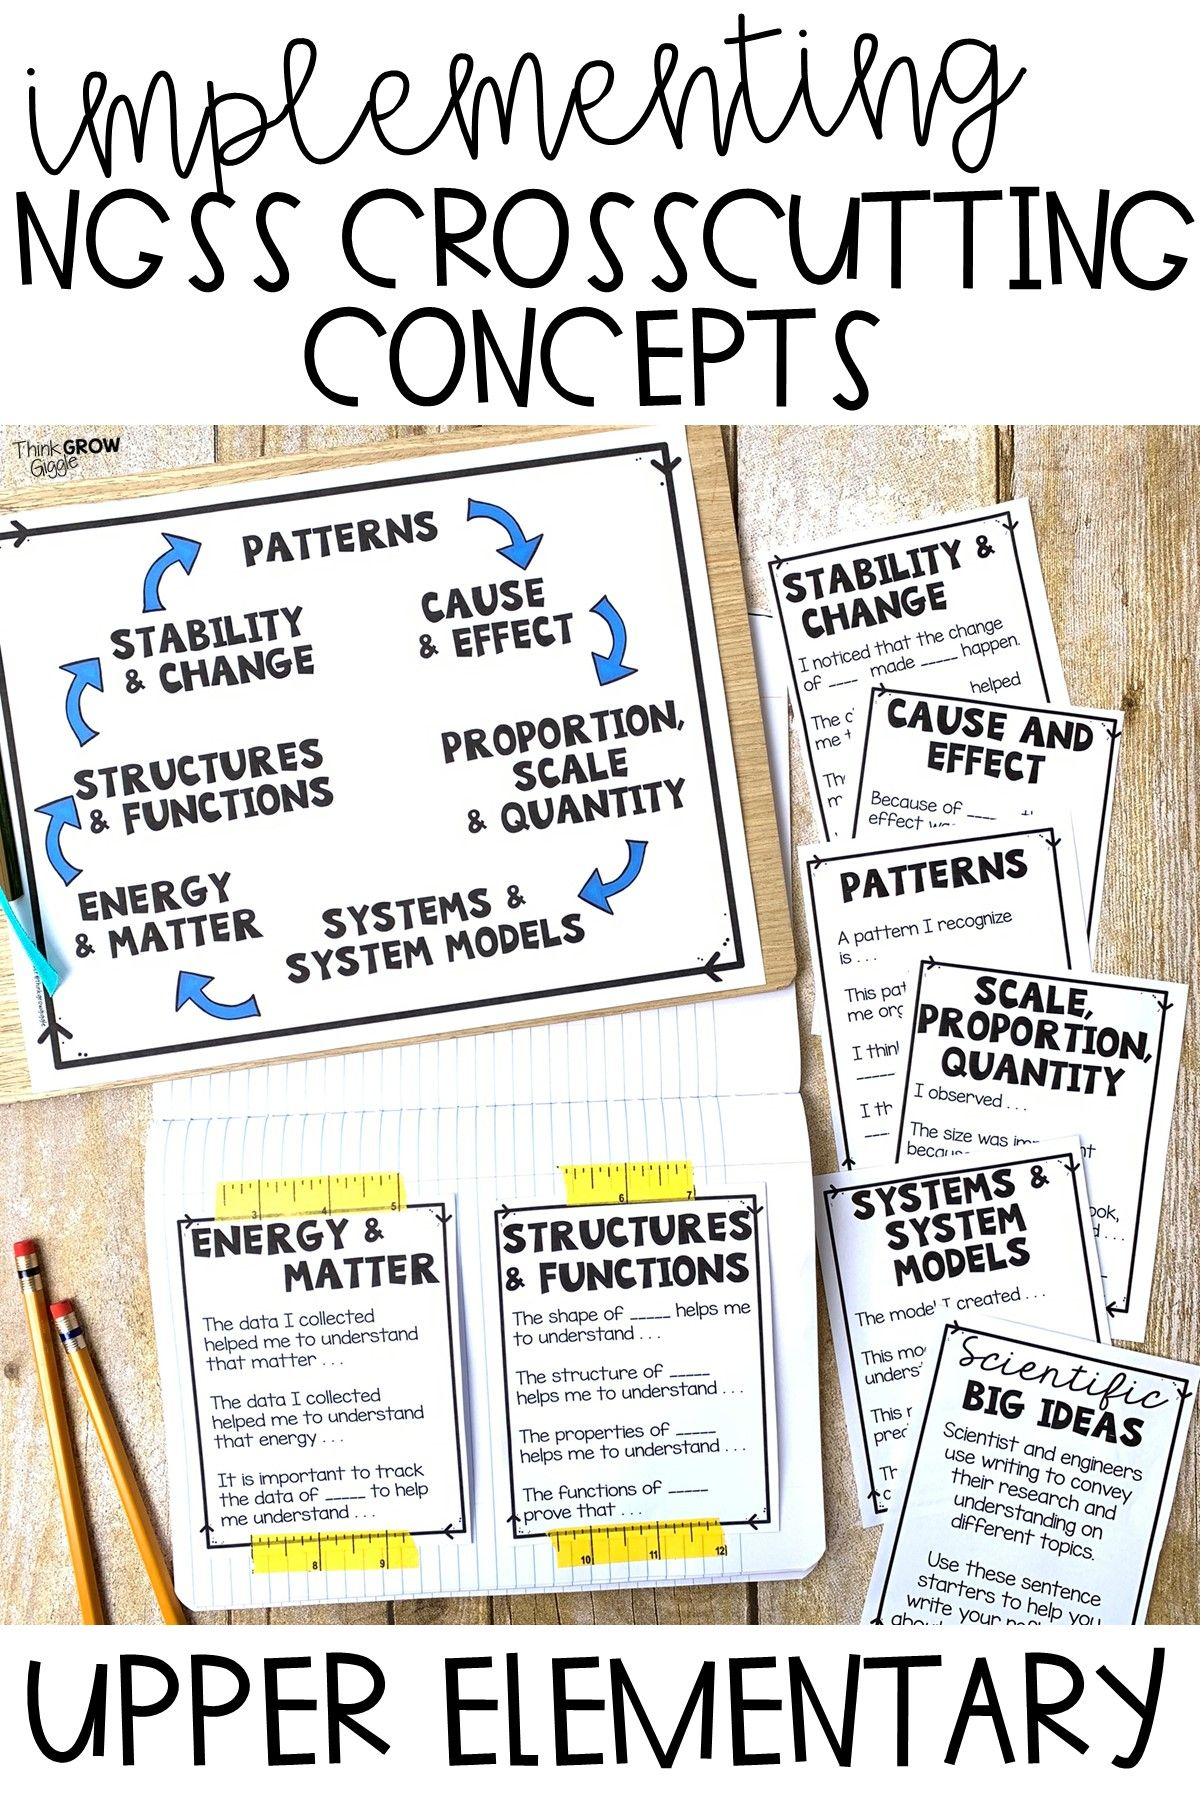 Ngss Crosscutting Concepts Posters Ngss Life Science Classroom